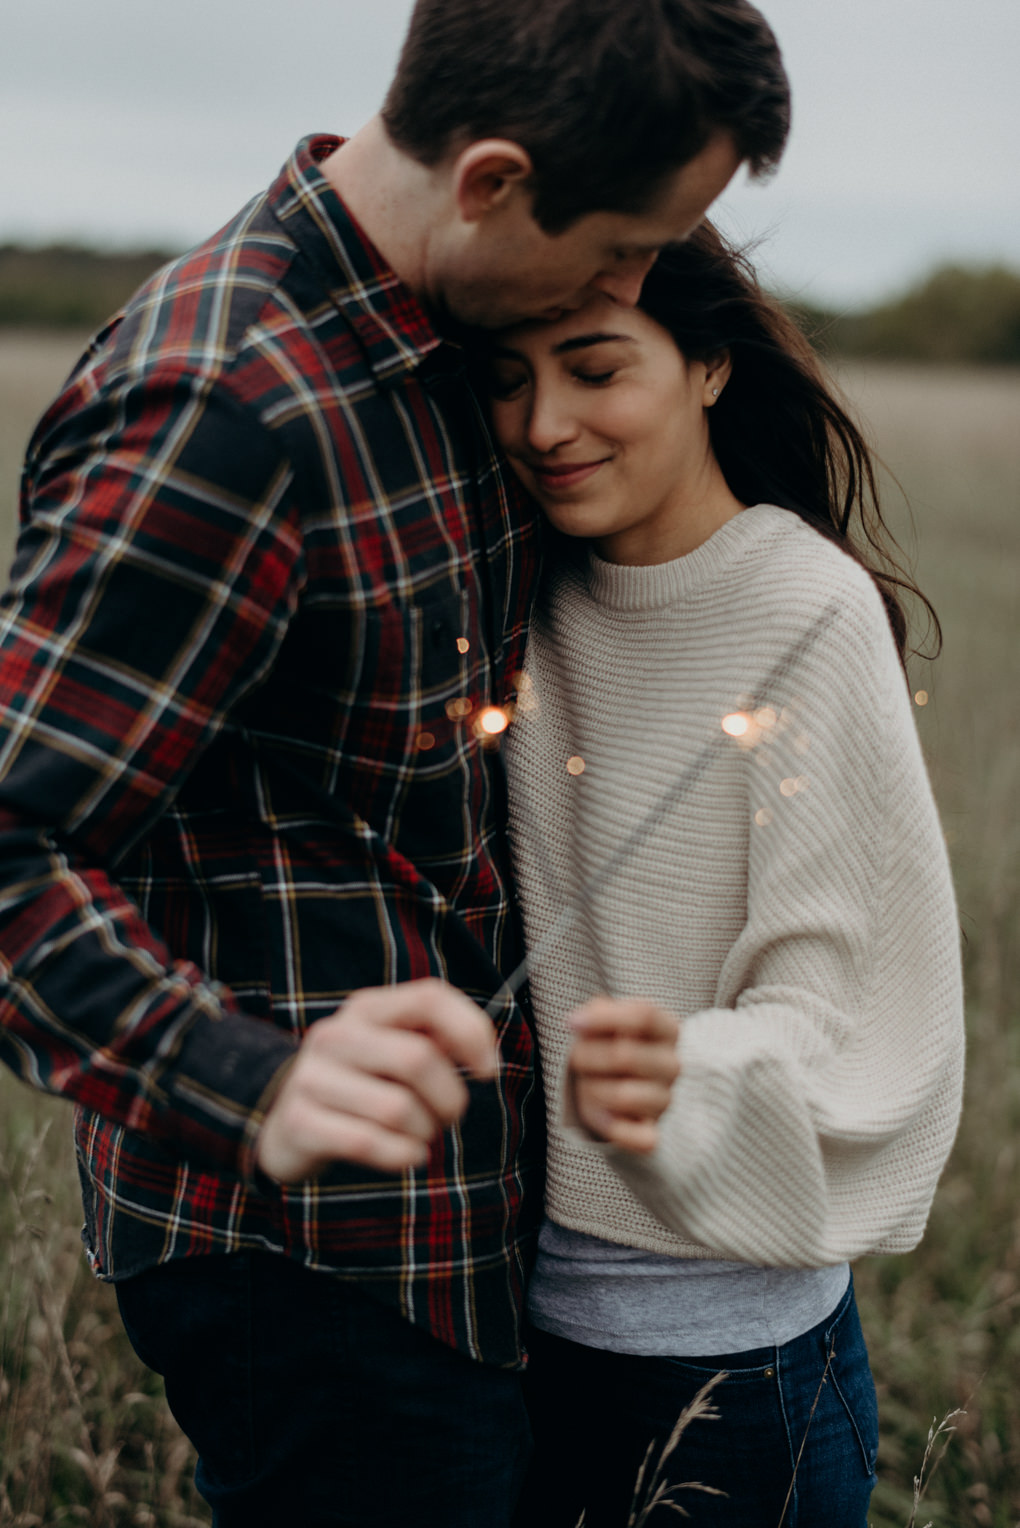 Couple laughing and holding sparklers